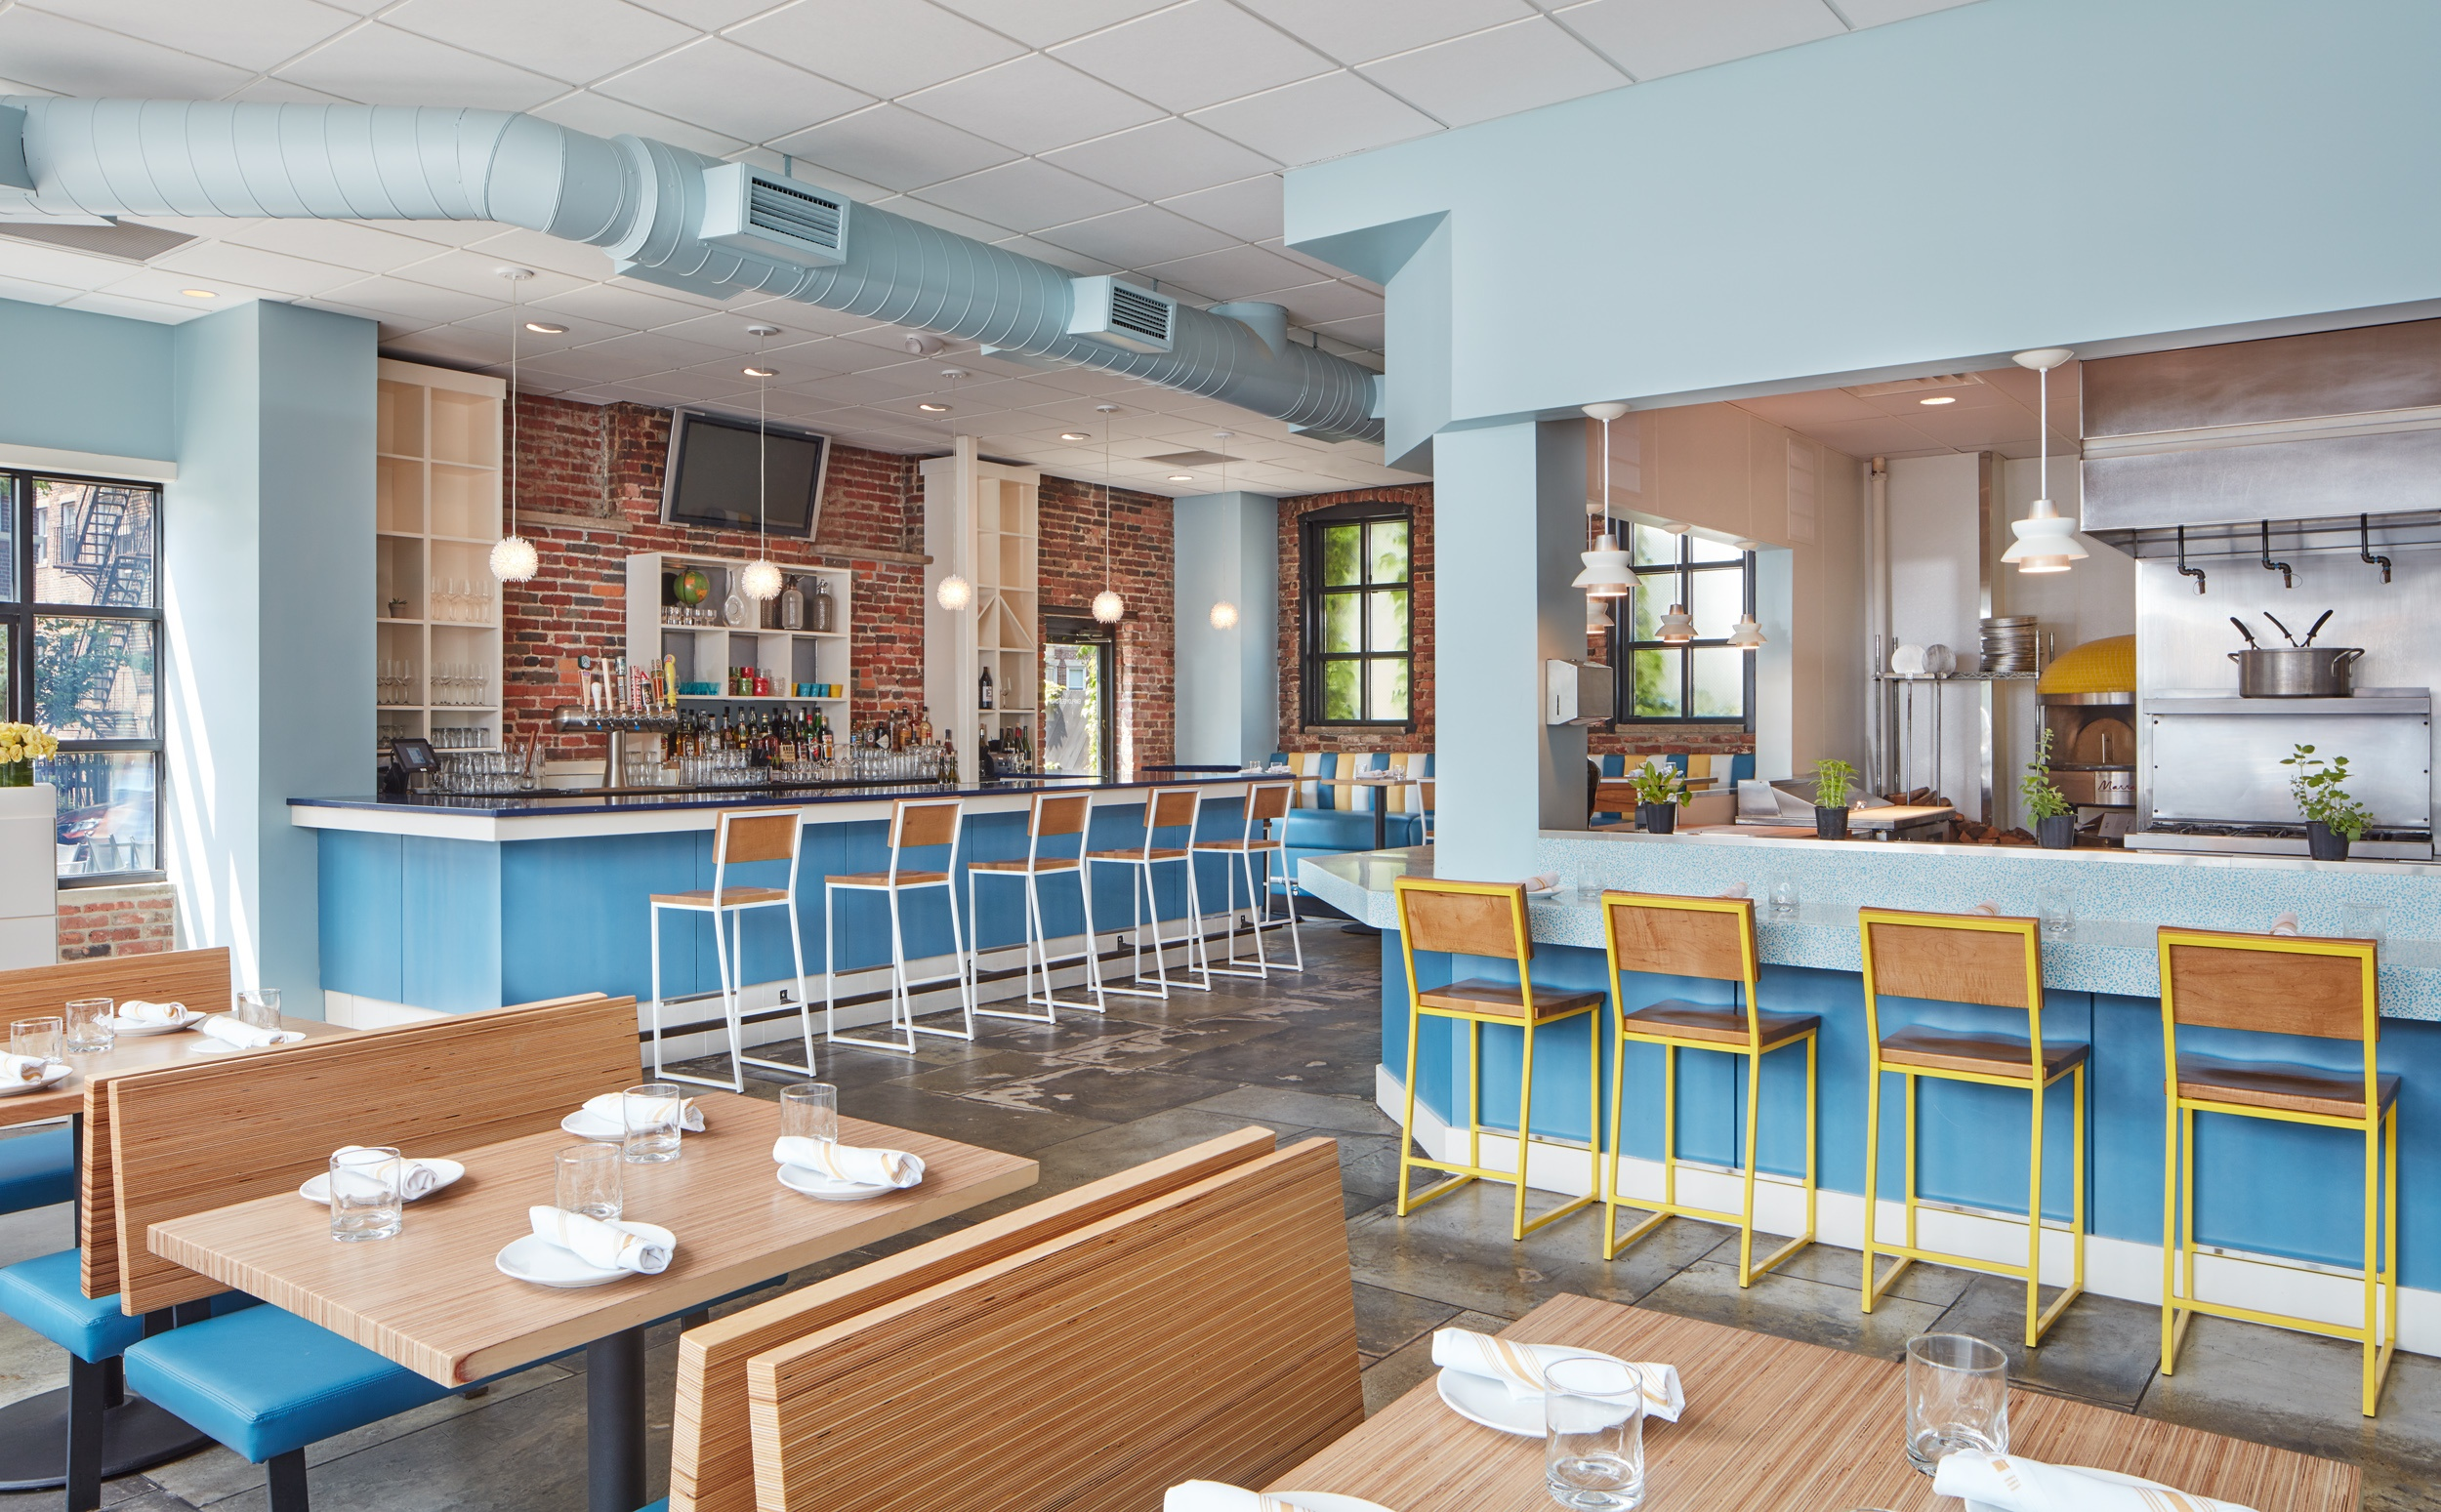 Tapestry colorful restaurant design